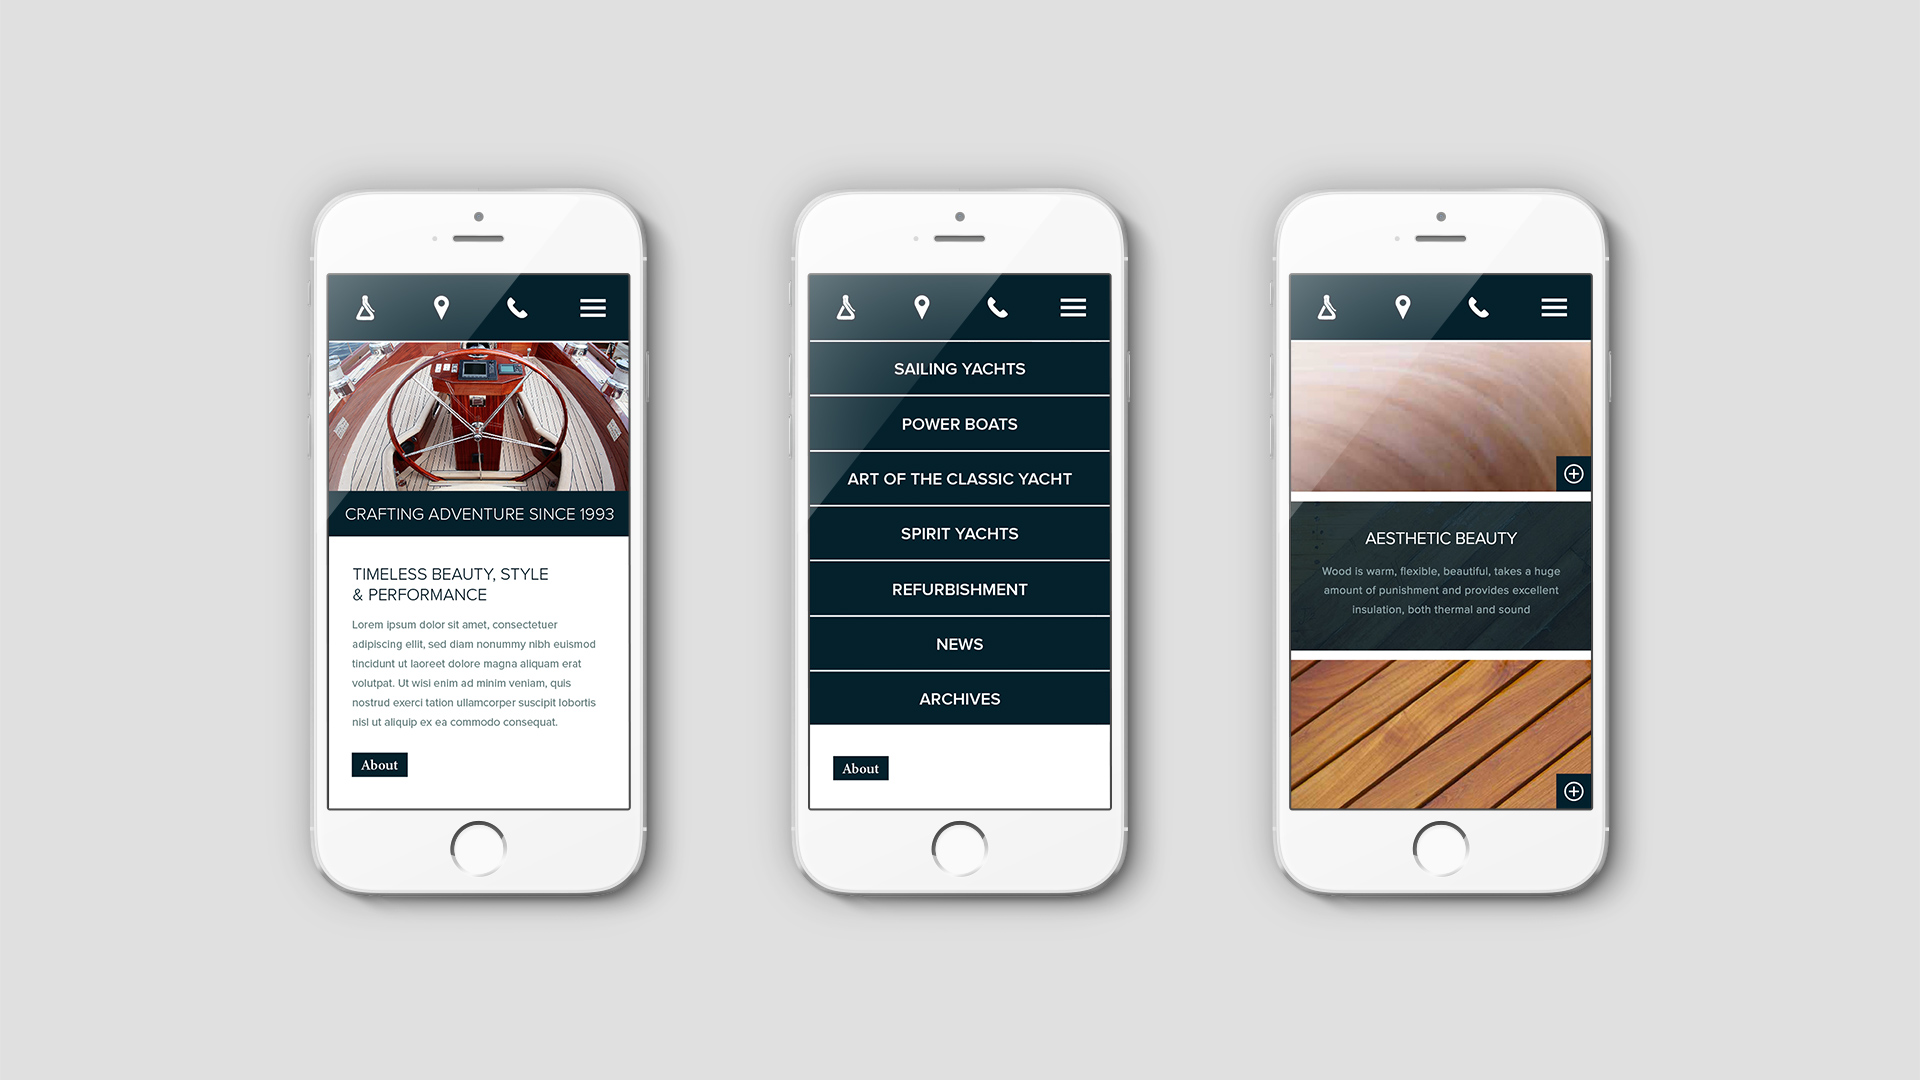 Luxury Yacht Marketing | Spirit Yachts | Three iPhones Showing Responsive Website